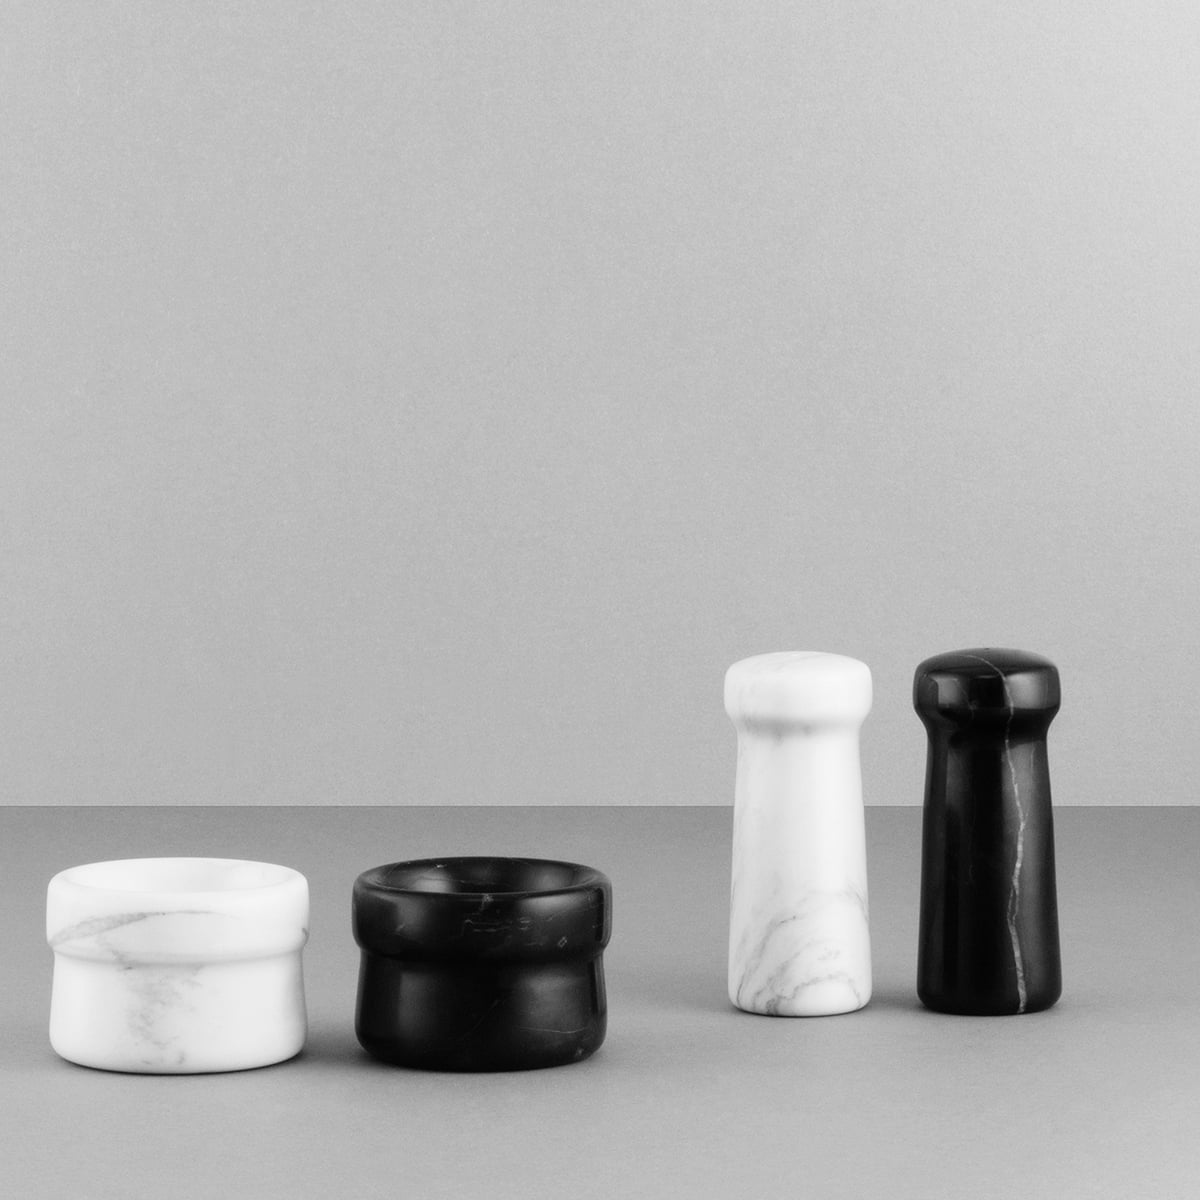 Buy The Craft Salt And Pepper Shakers By Nch